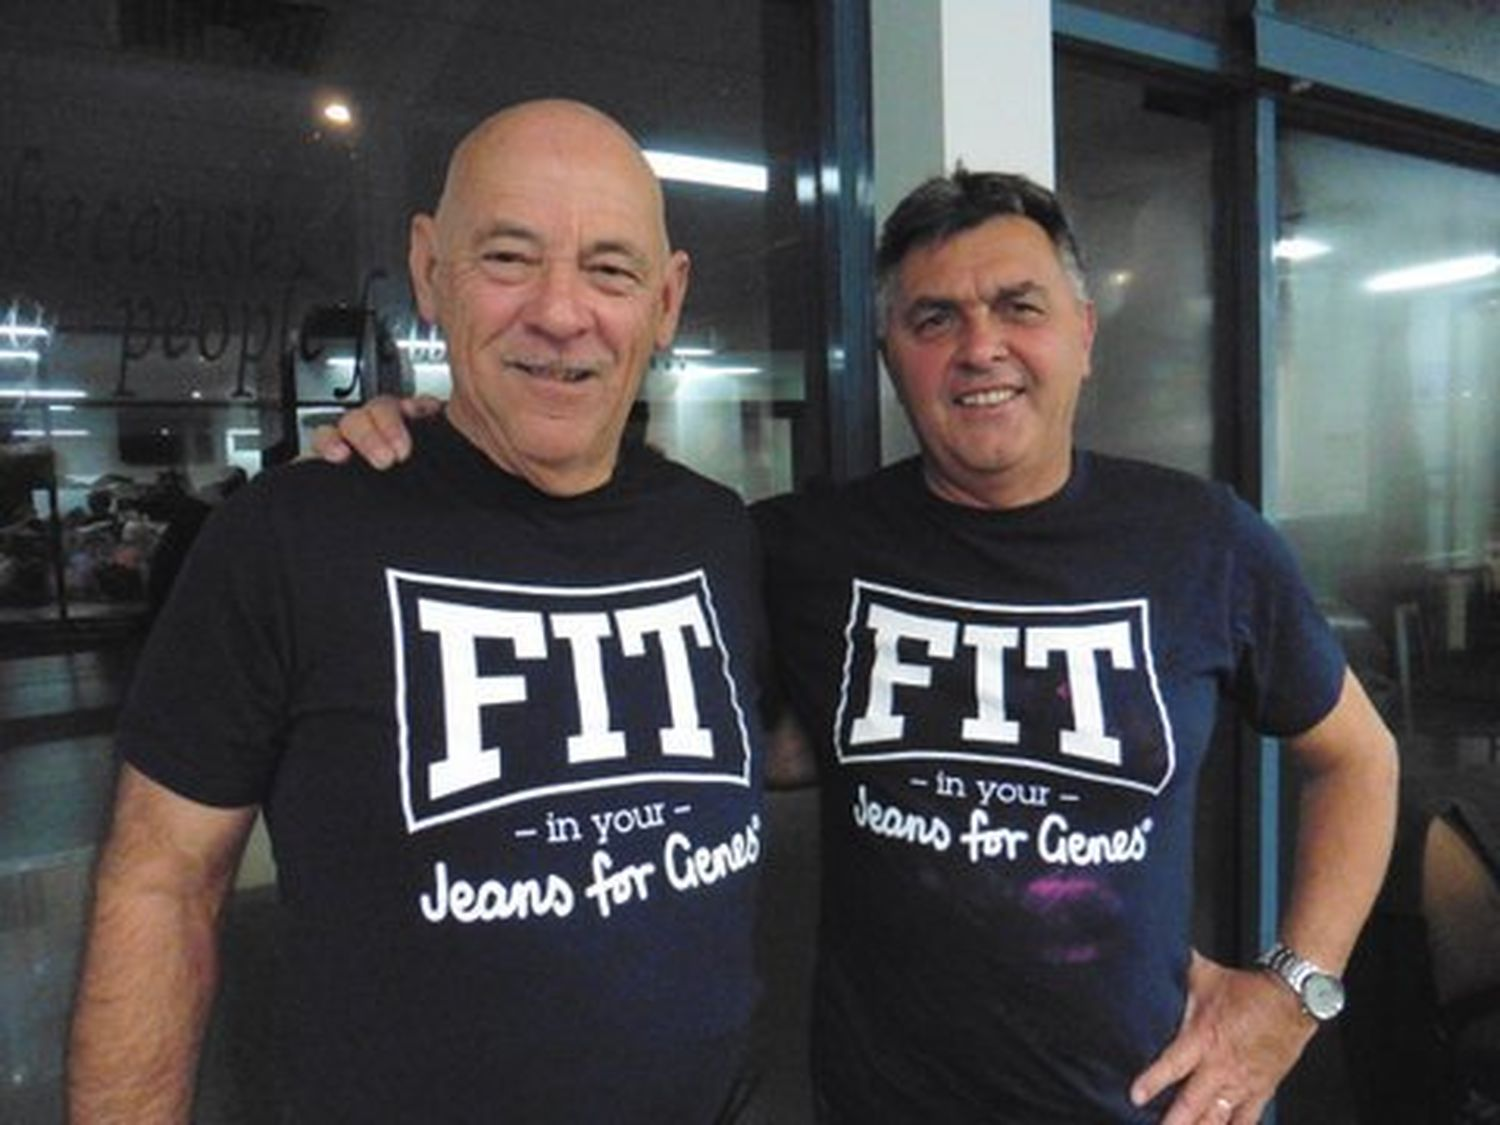 Gerringong Committee FIT in your Jeans for Genes